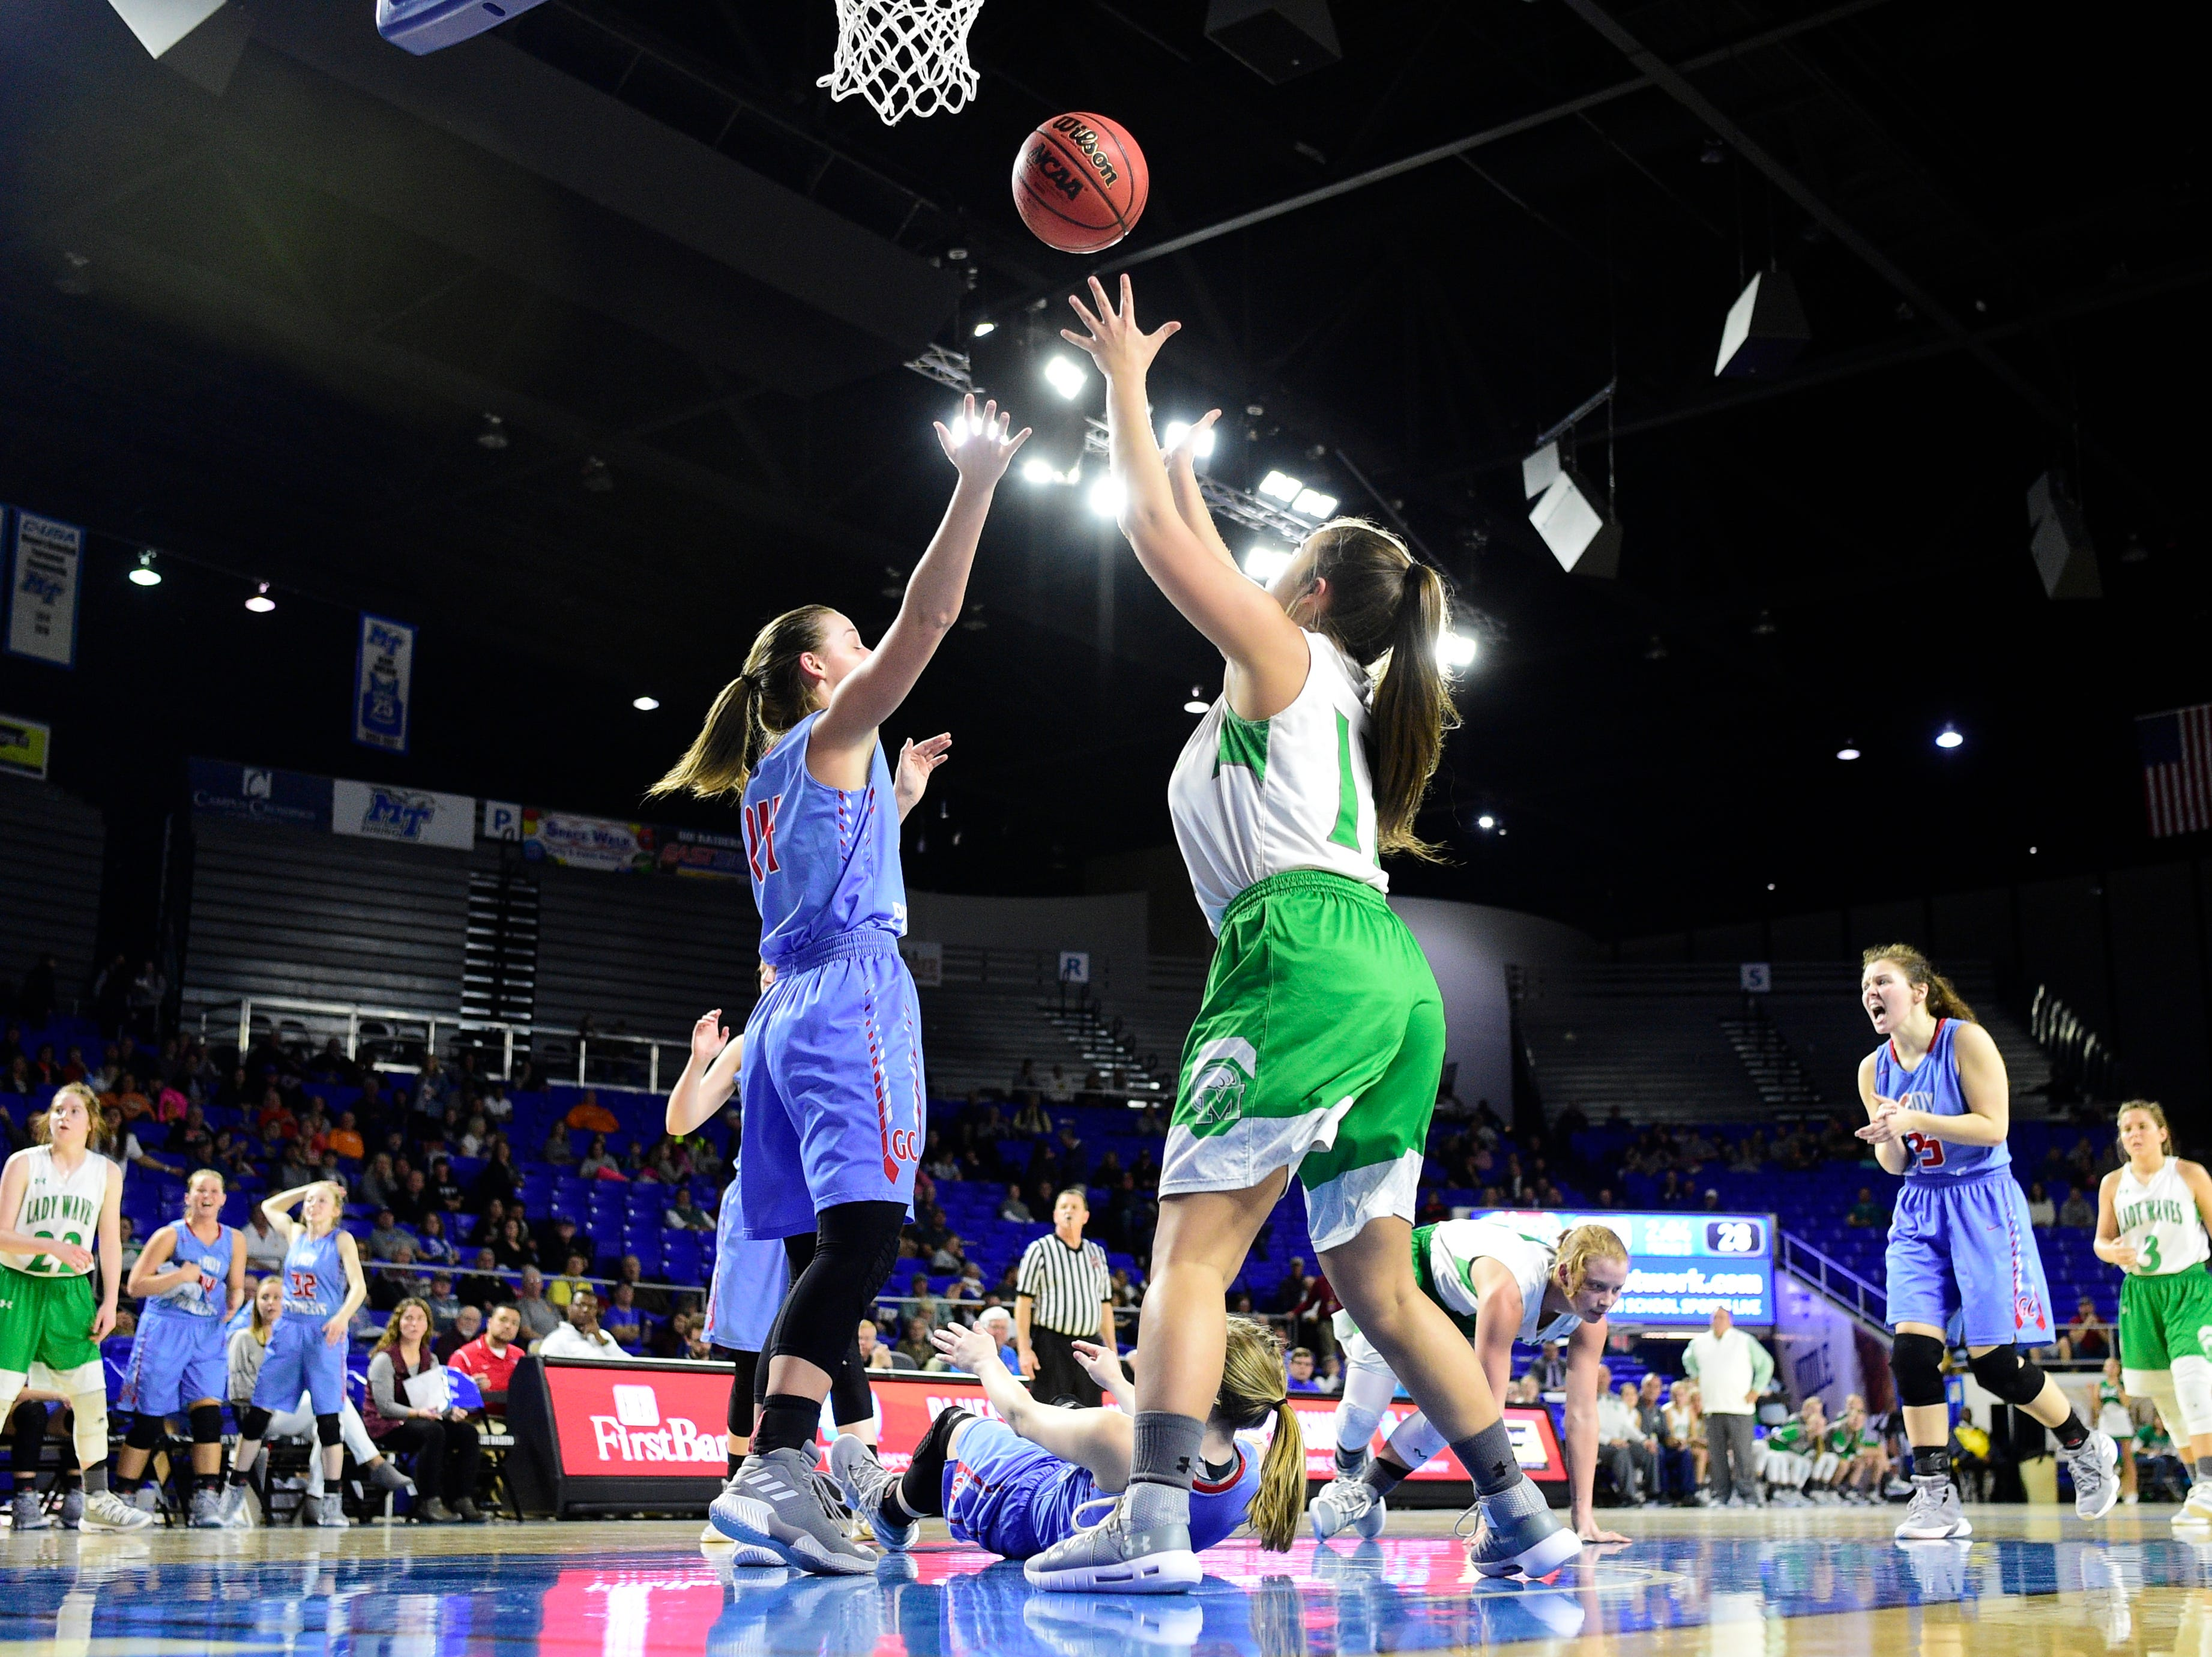 Greenfield's Tess Darby (10) and Gibson County's Alaina Hunt (14) reach for the ball during a game between Midway and Gibson County at the TSSAA girls state tournament at the Murphy Center in Murfreesboro, Tennessee on Friday, March 8, 2019.